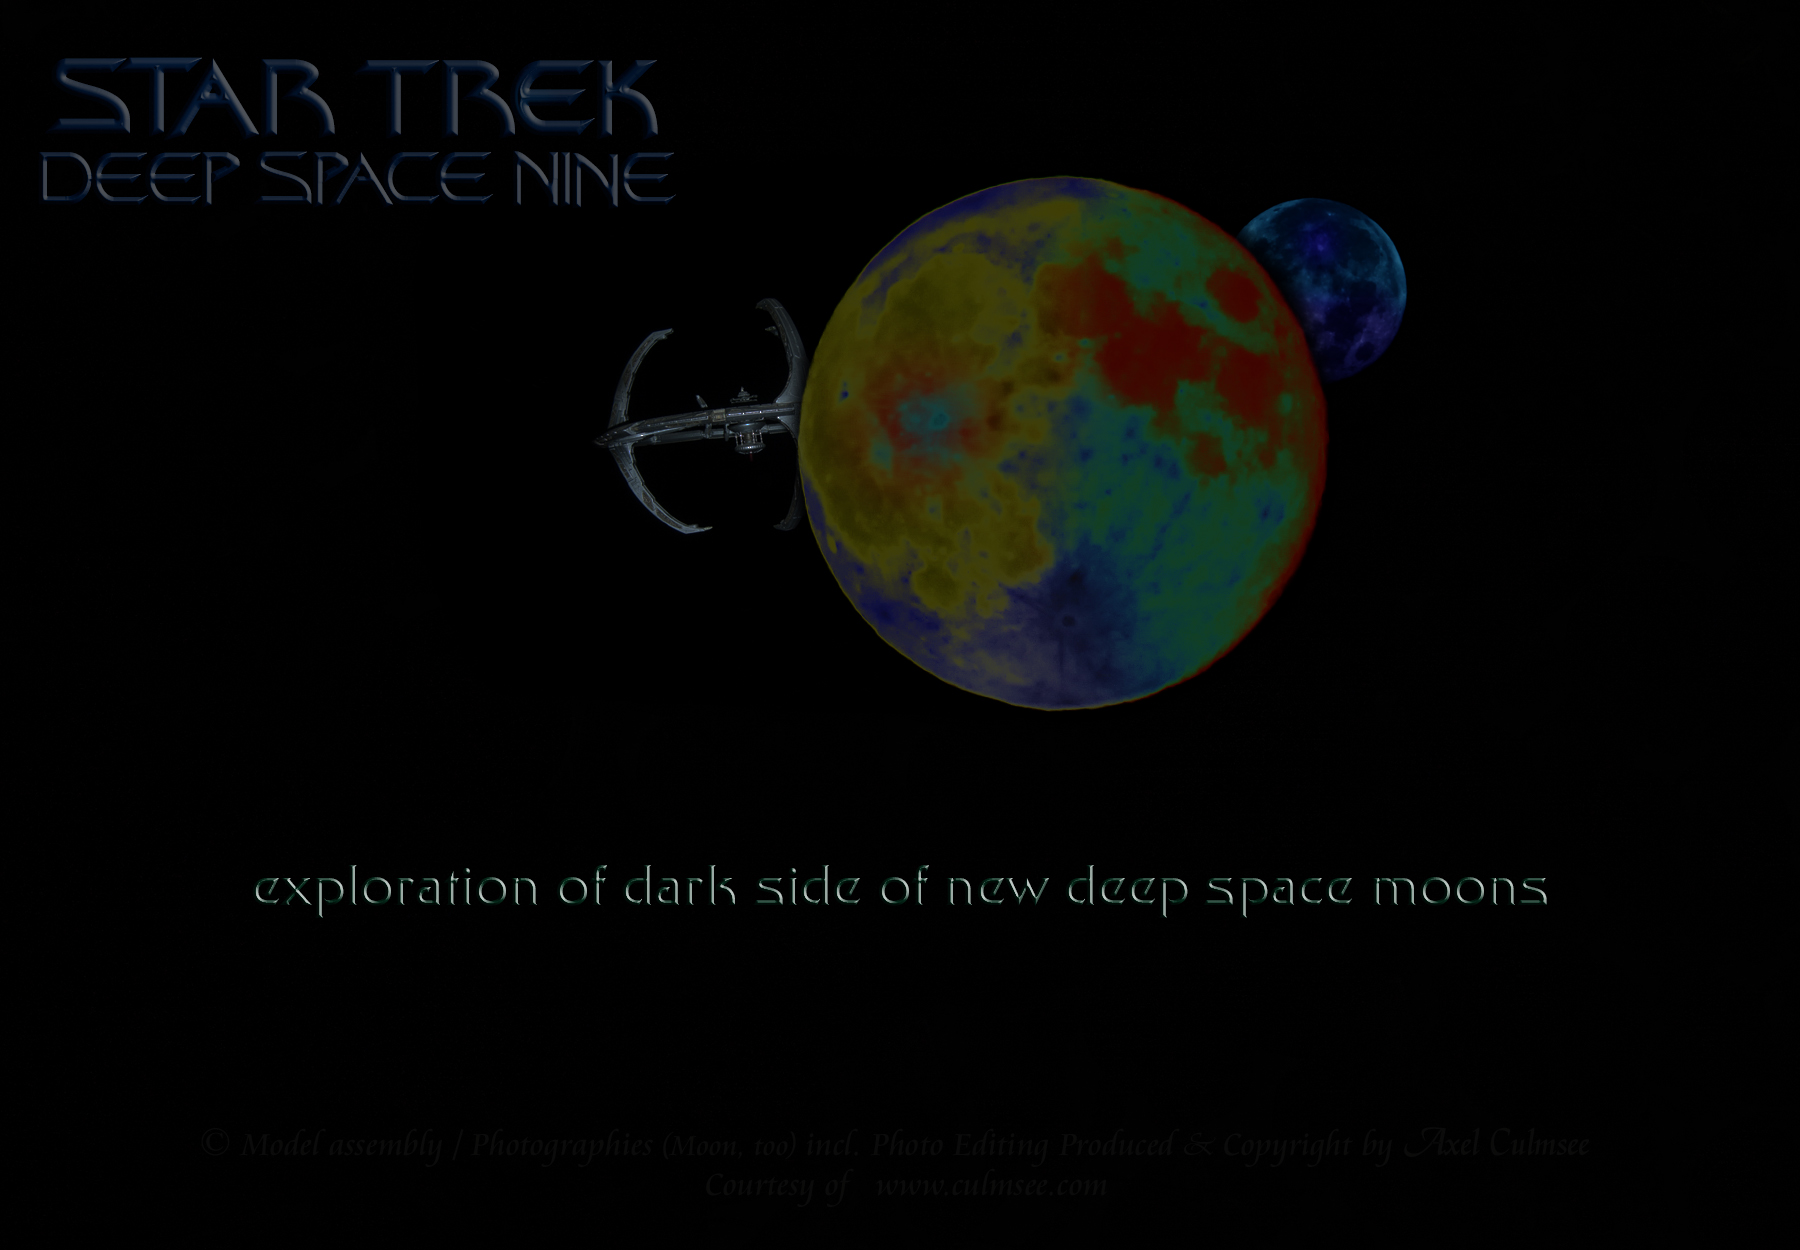 DS9 exploration of dark side of new deep space moons